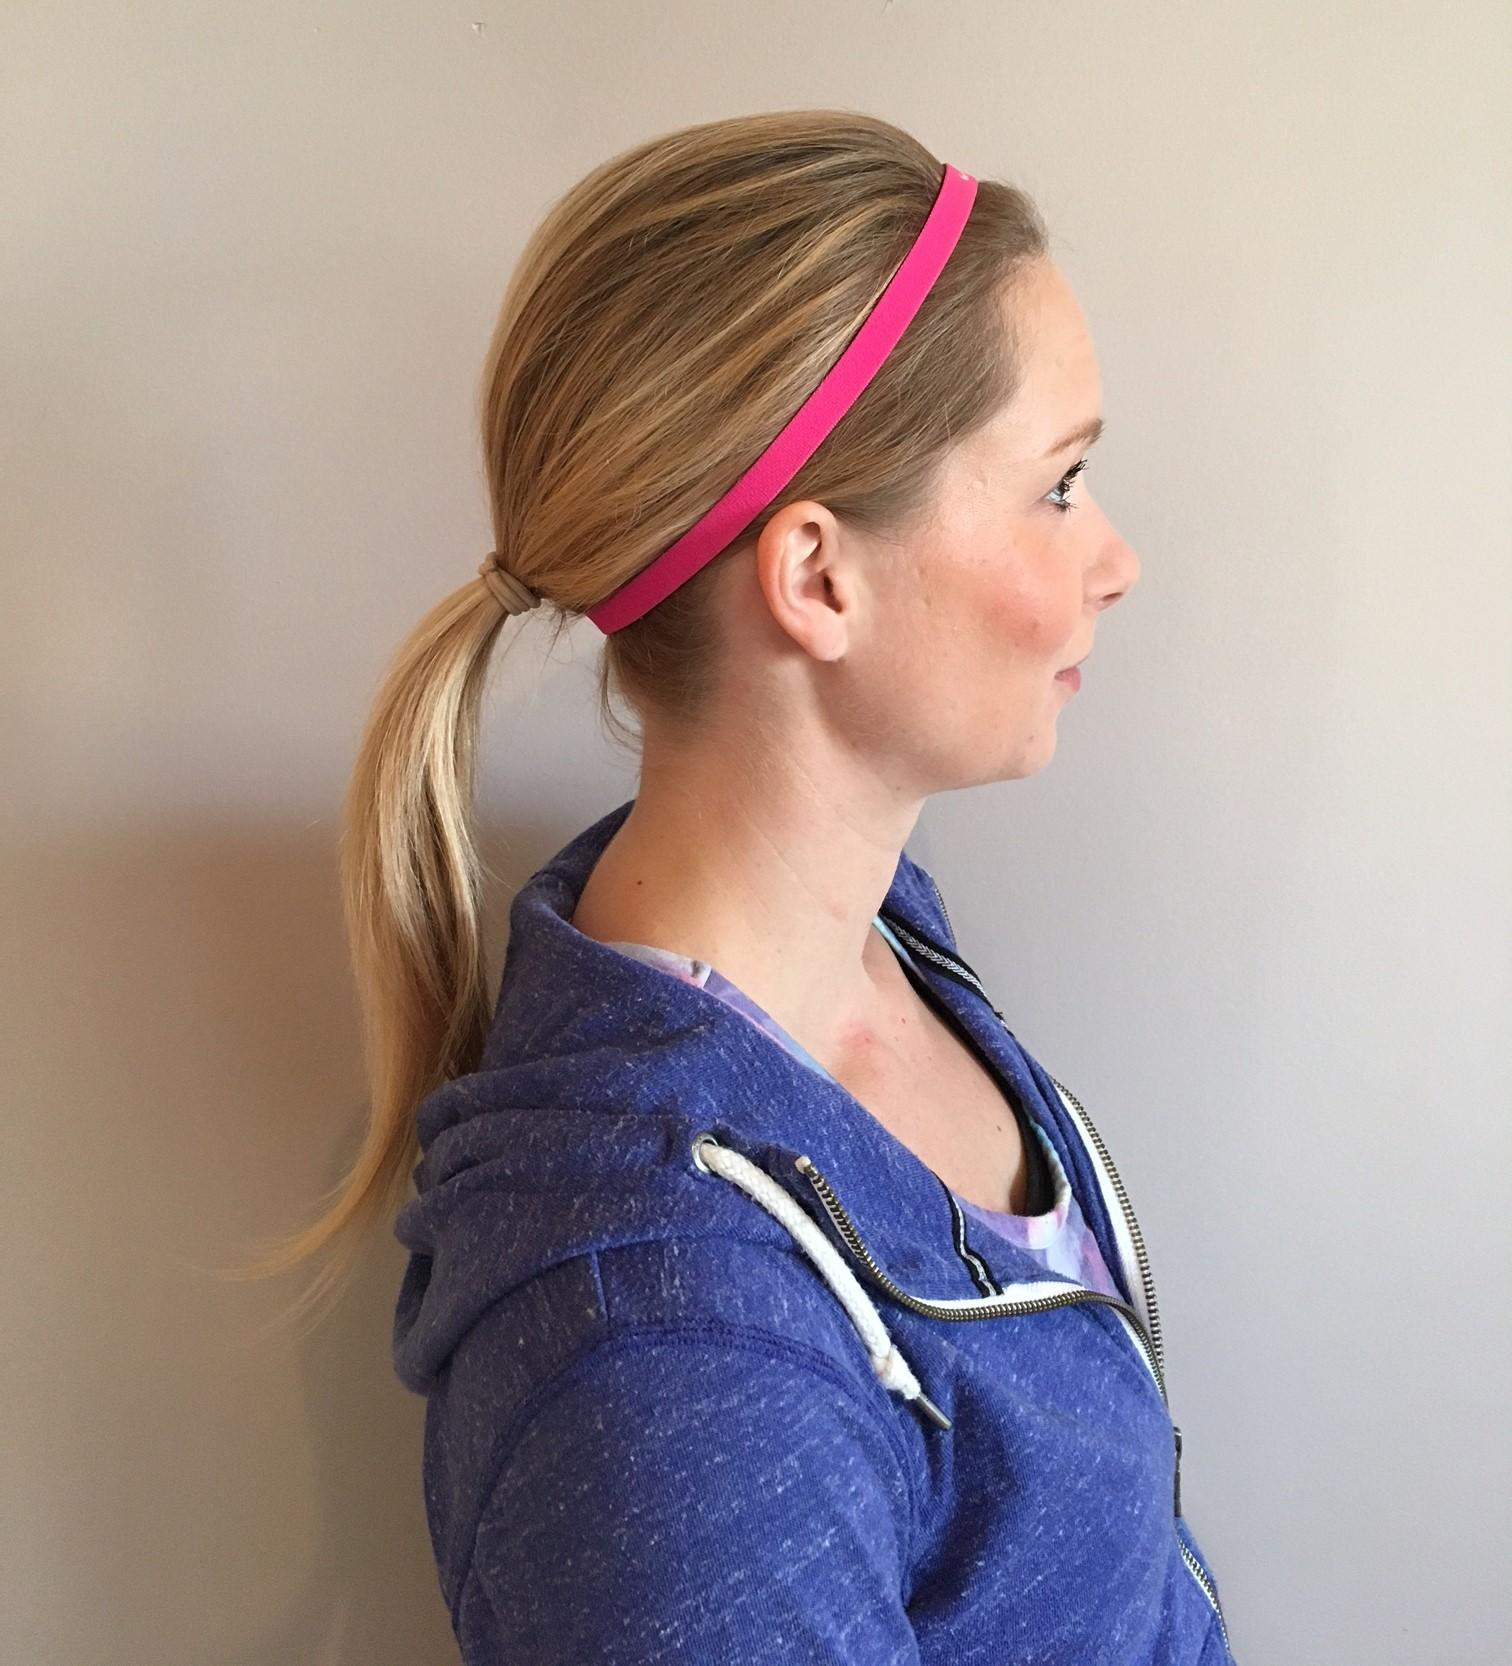 hairstyles for running and triathlons - thoughts and pavement